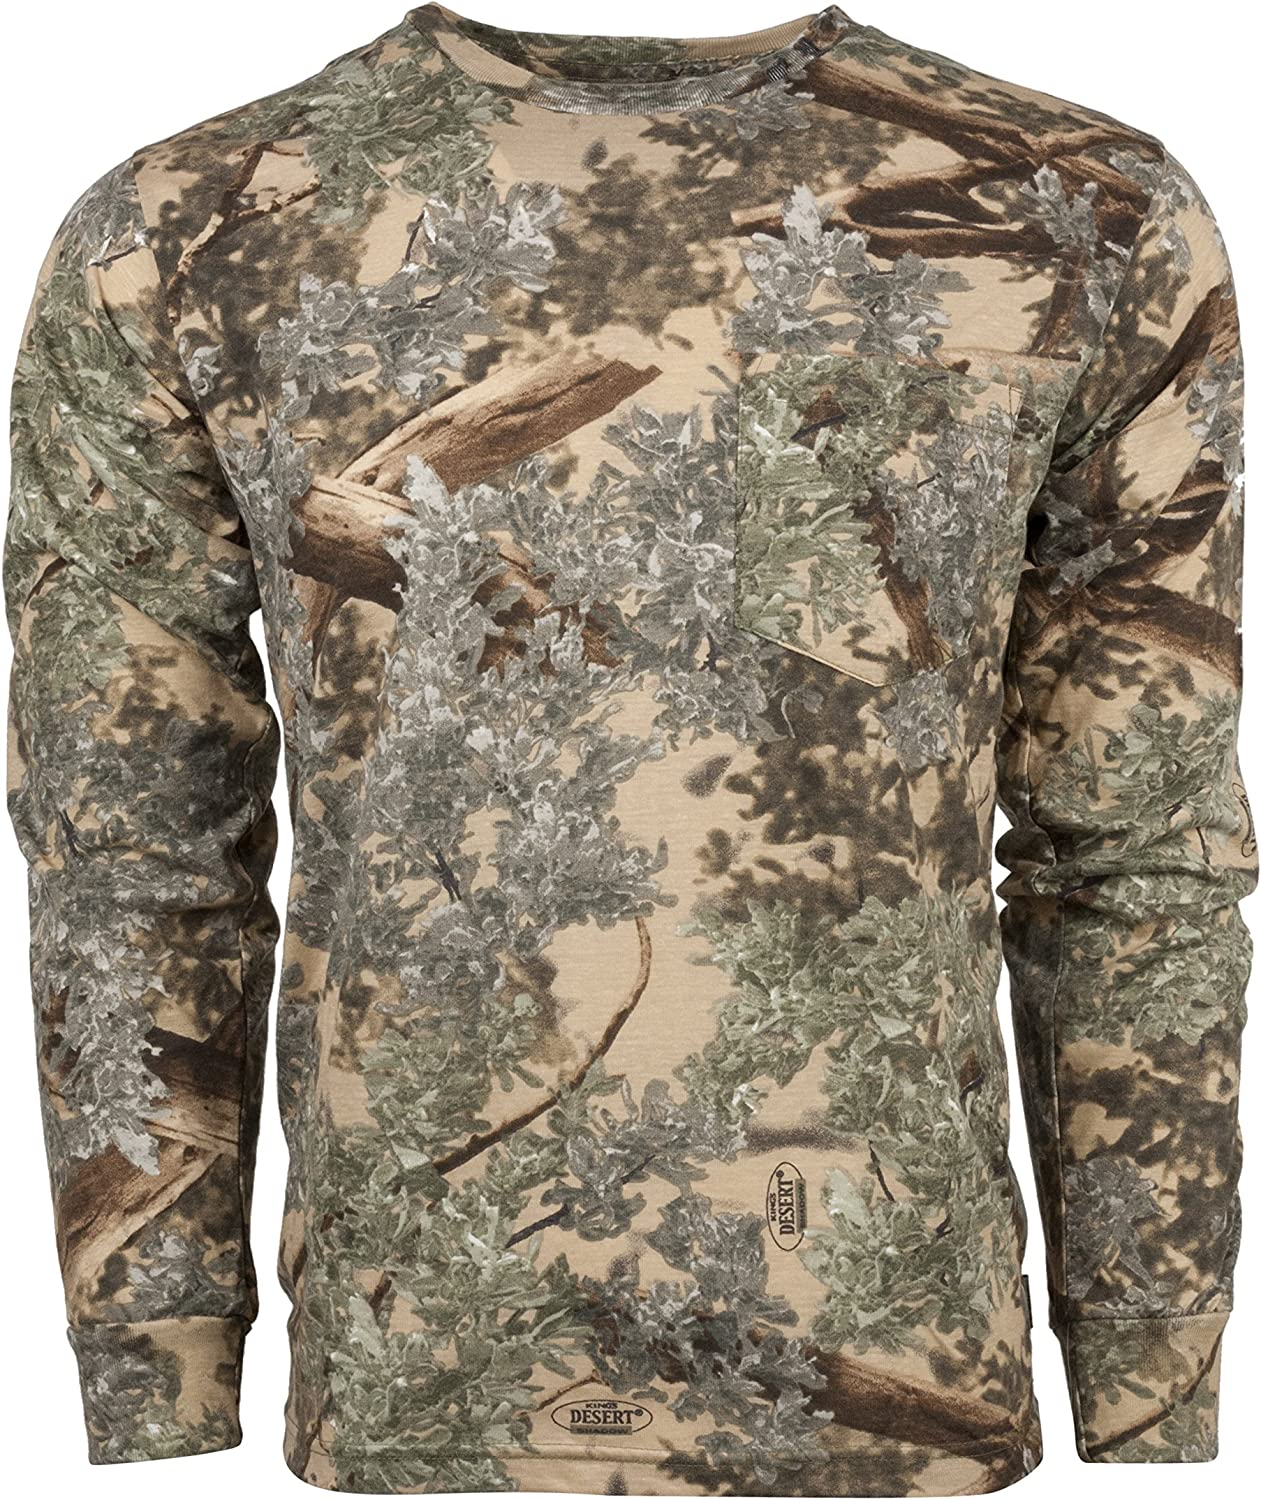 King's Camo Cotton Free shipping anywhere in the nation Translated Long Sleeve Tee Hunting